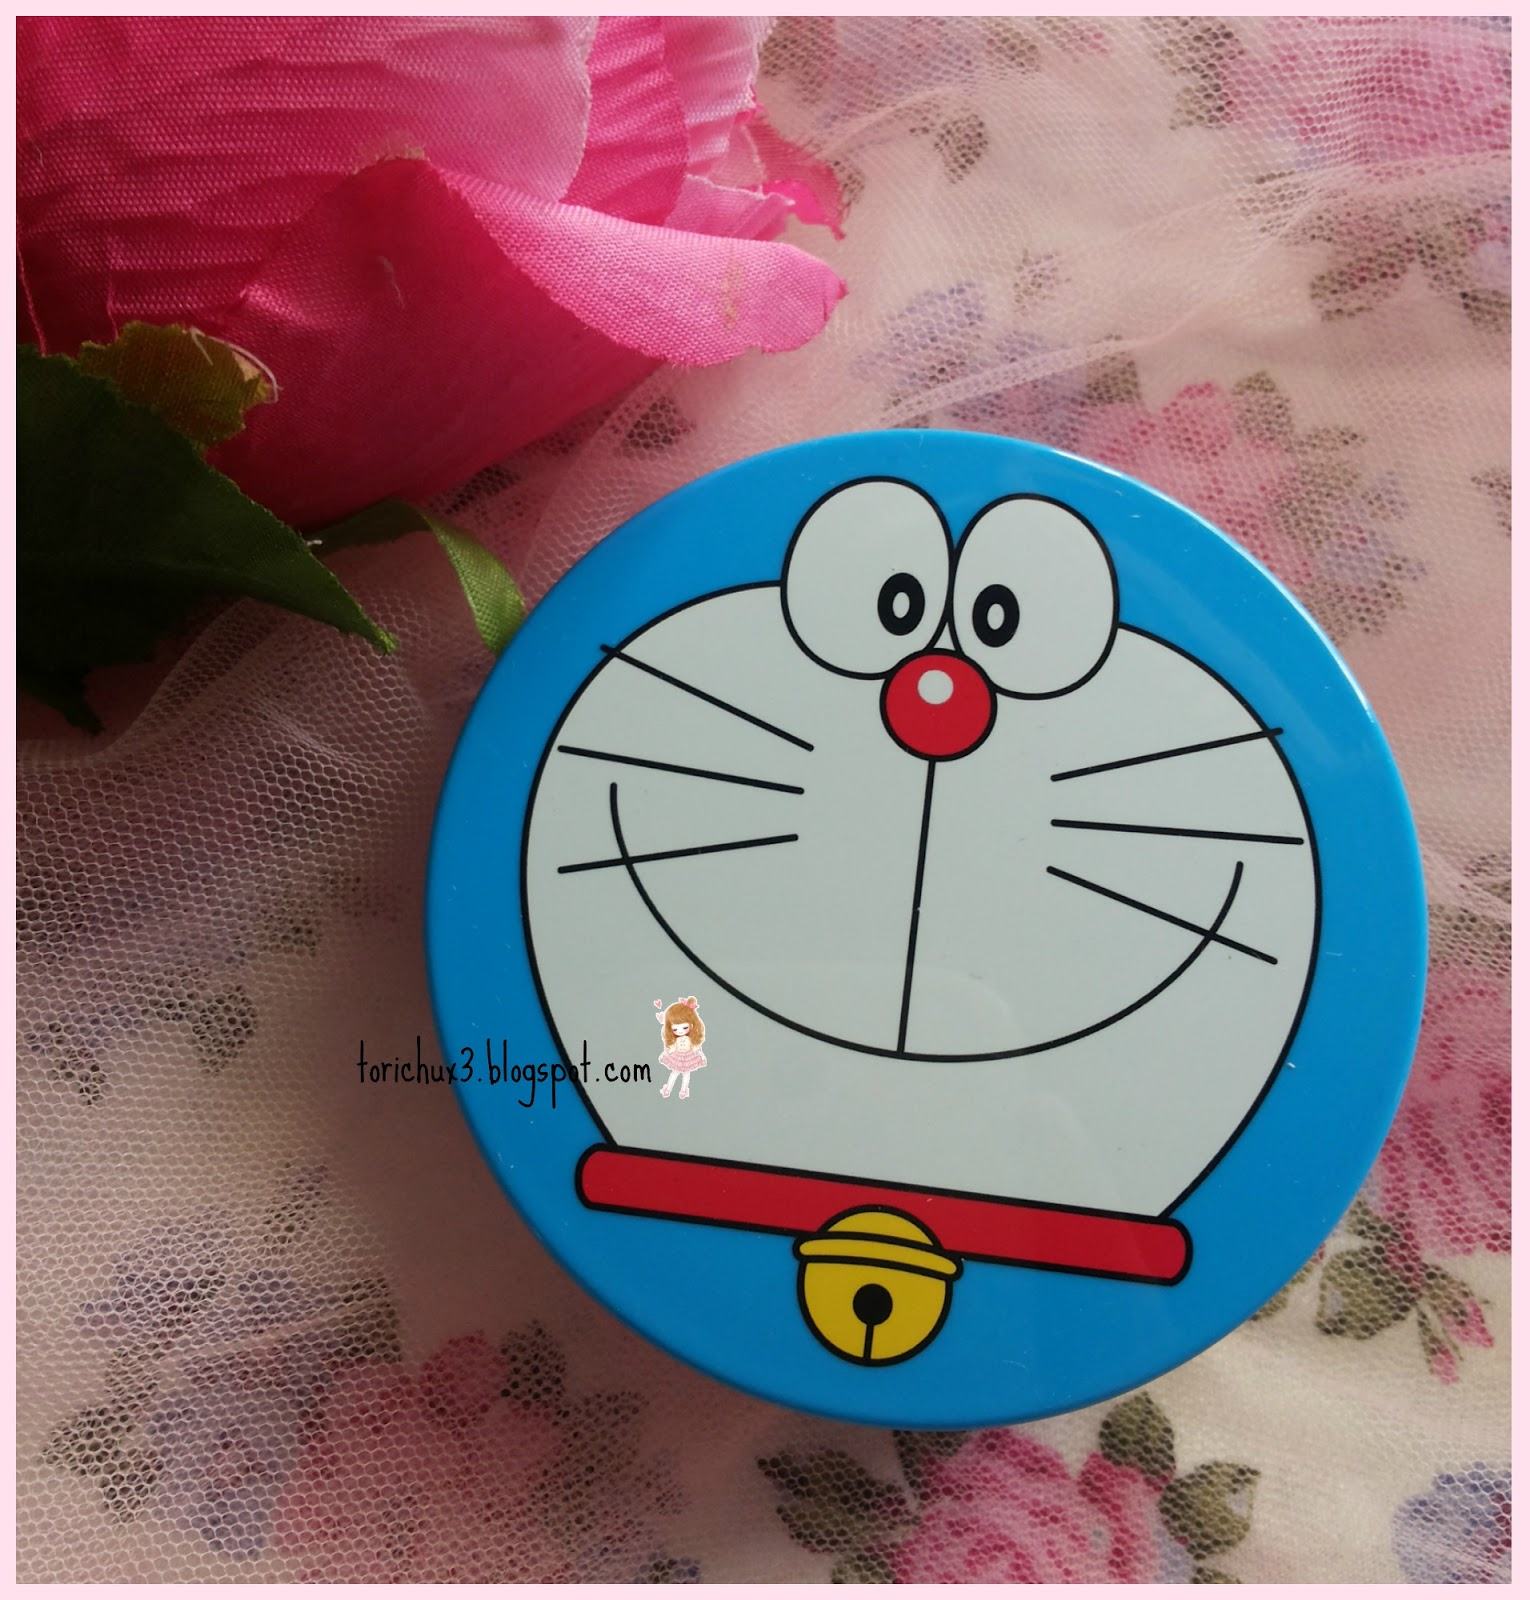 7940a5a70 Doraemon Air fit Chusion ^^ When first seeing the collection, I fell in  love and purchased it directly.